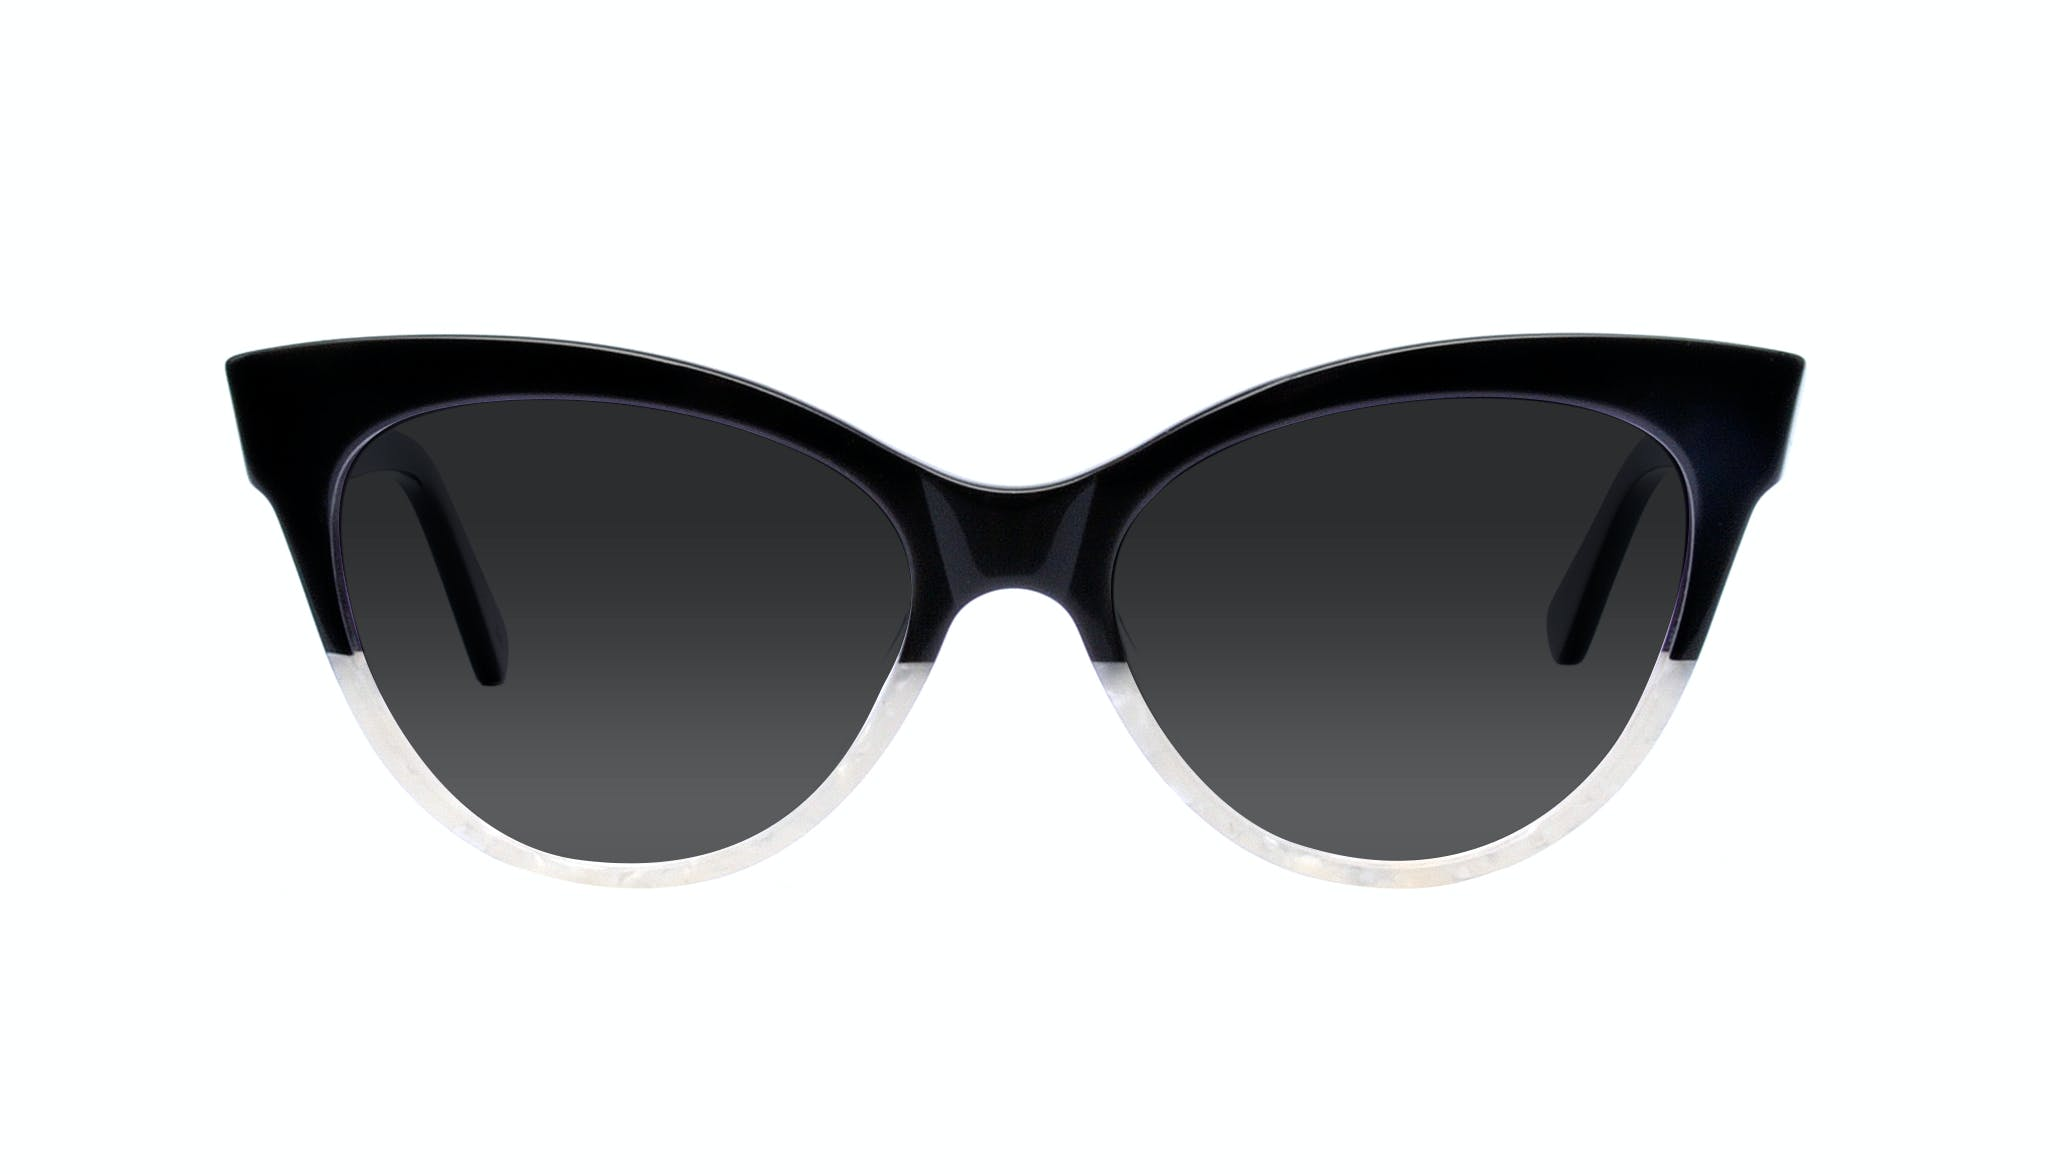 Affordable Fashion Glasses Cat Eye Daring Cateye Sunglasses Women SkunkBoy Panda Pearl Front